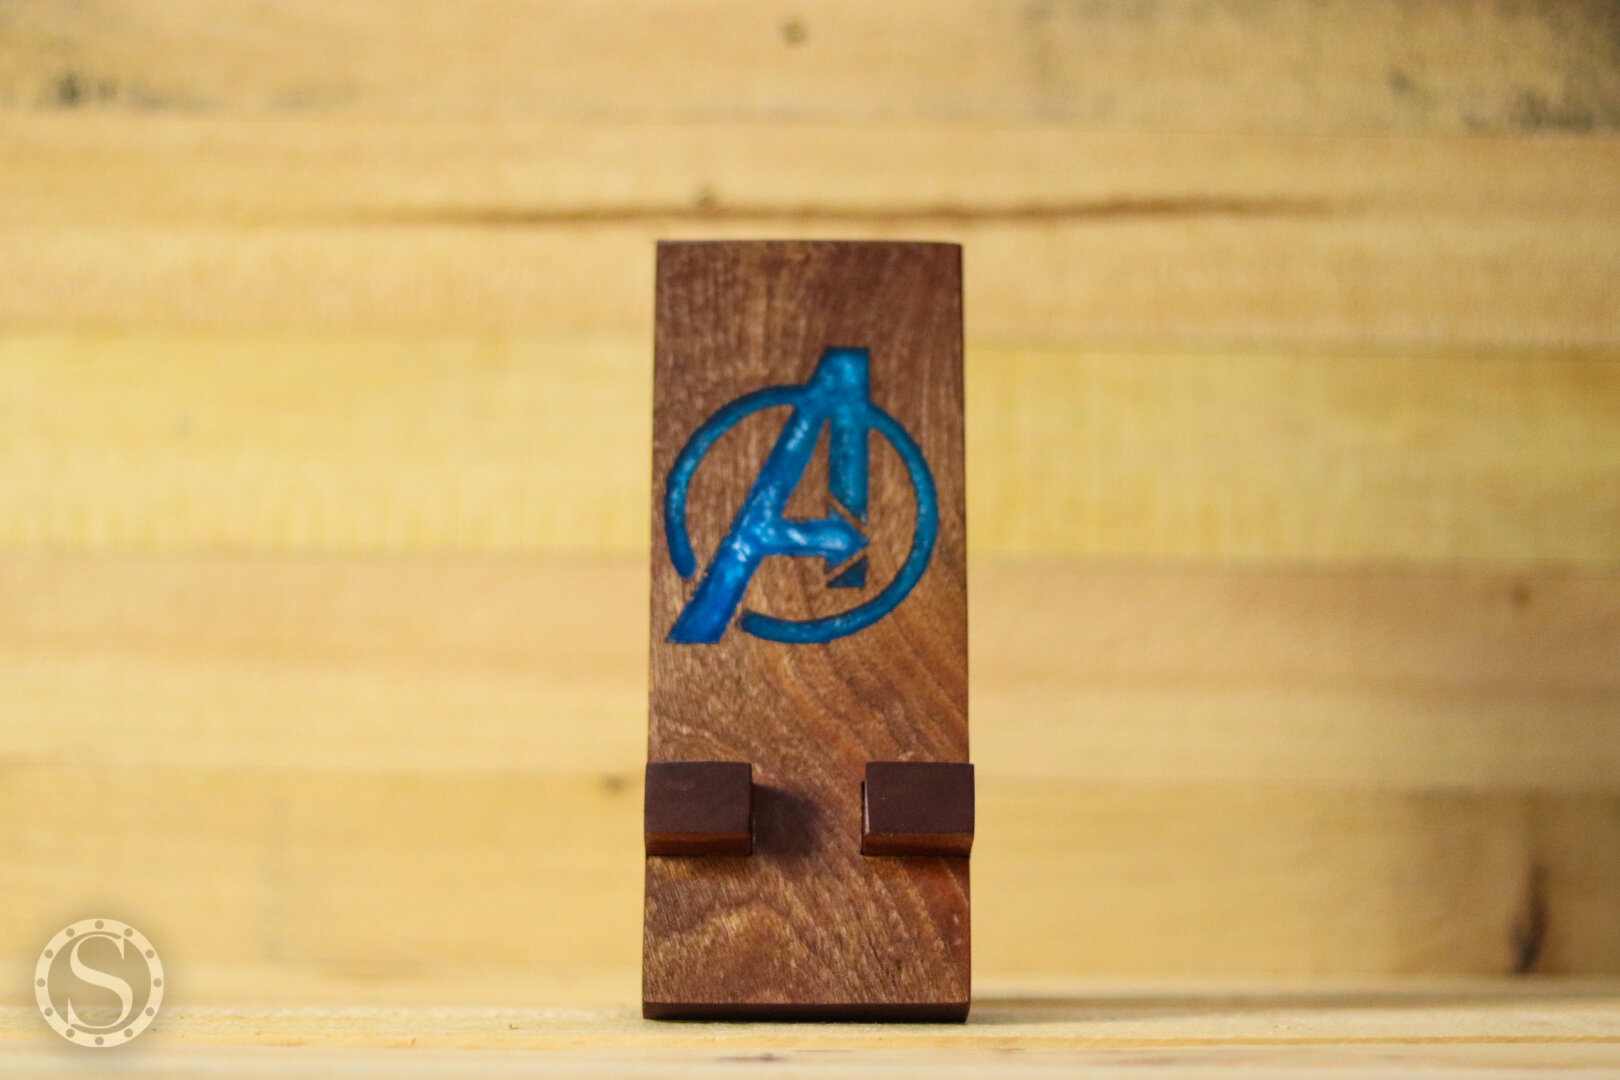 Avengers Phone Holder - Finished Front View